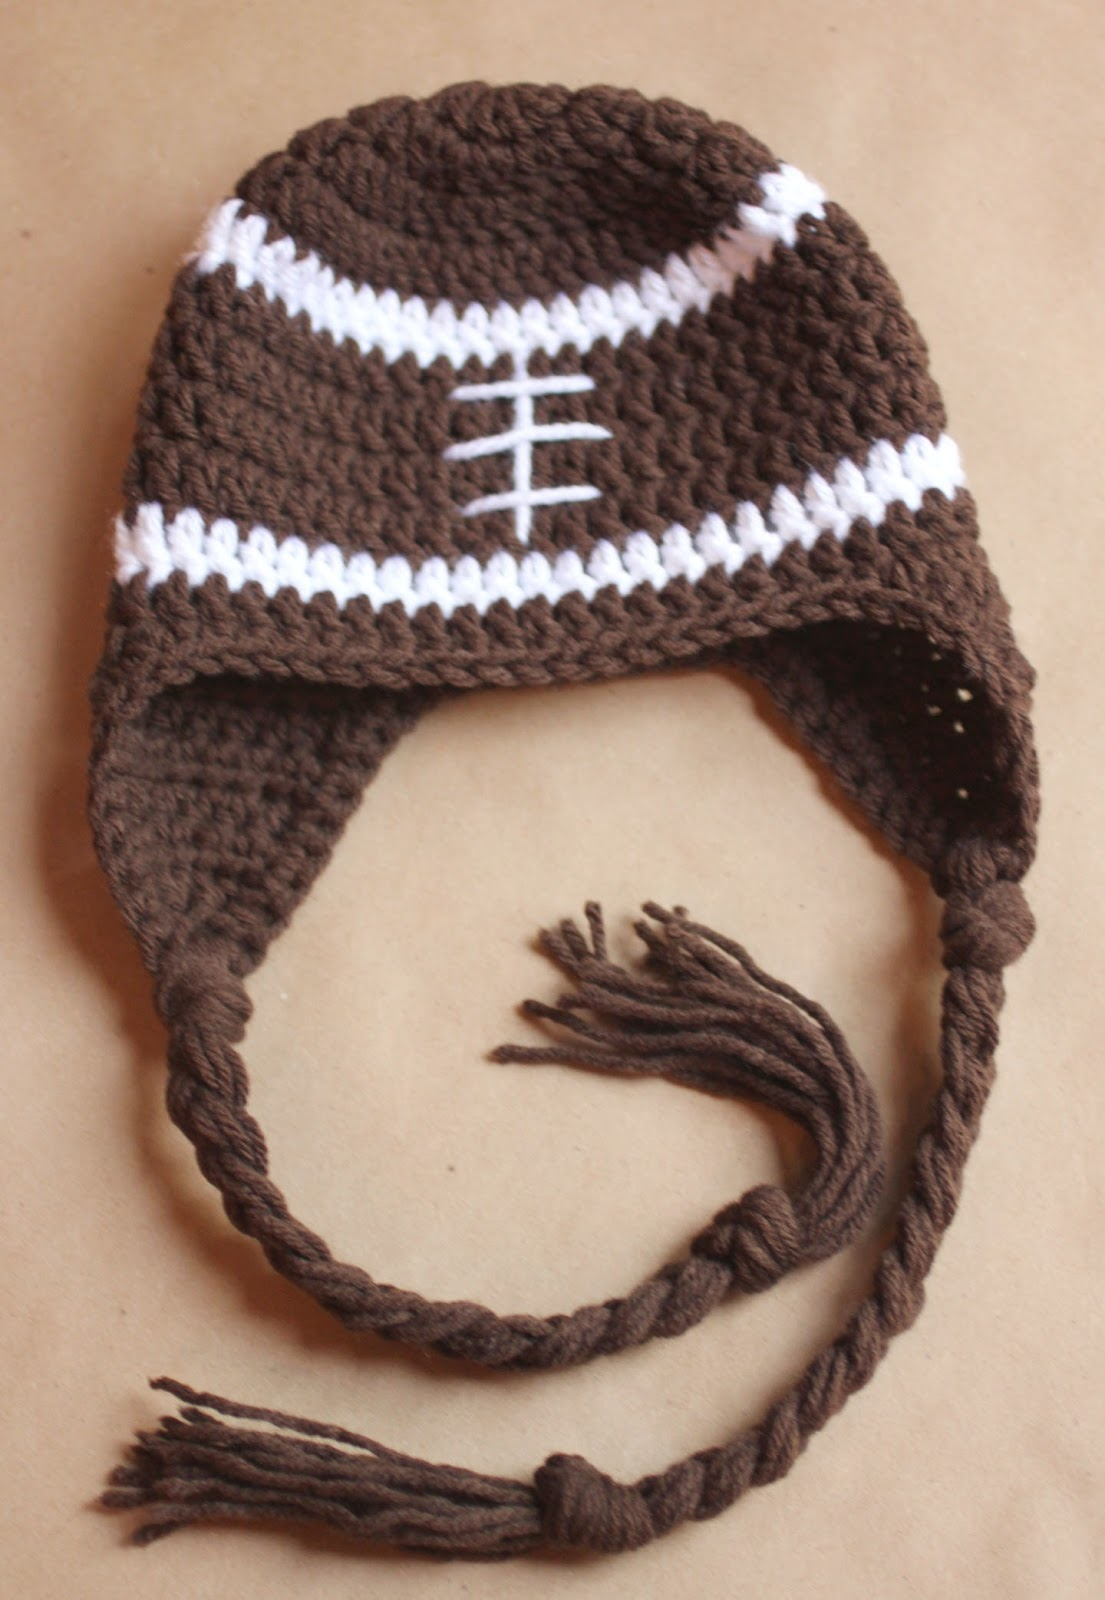 Free Crochet Pattern Earflap Beanie : Crochet Football Earflap Hat Pattern - Repeat Crafter Me